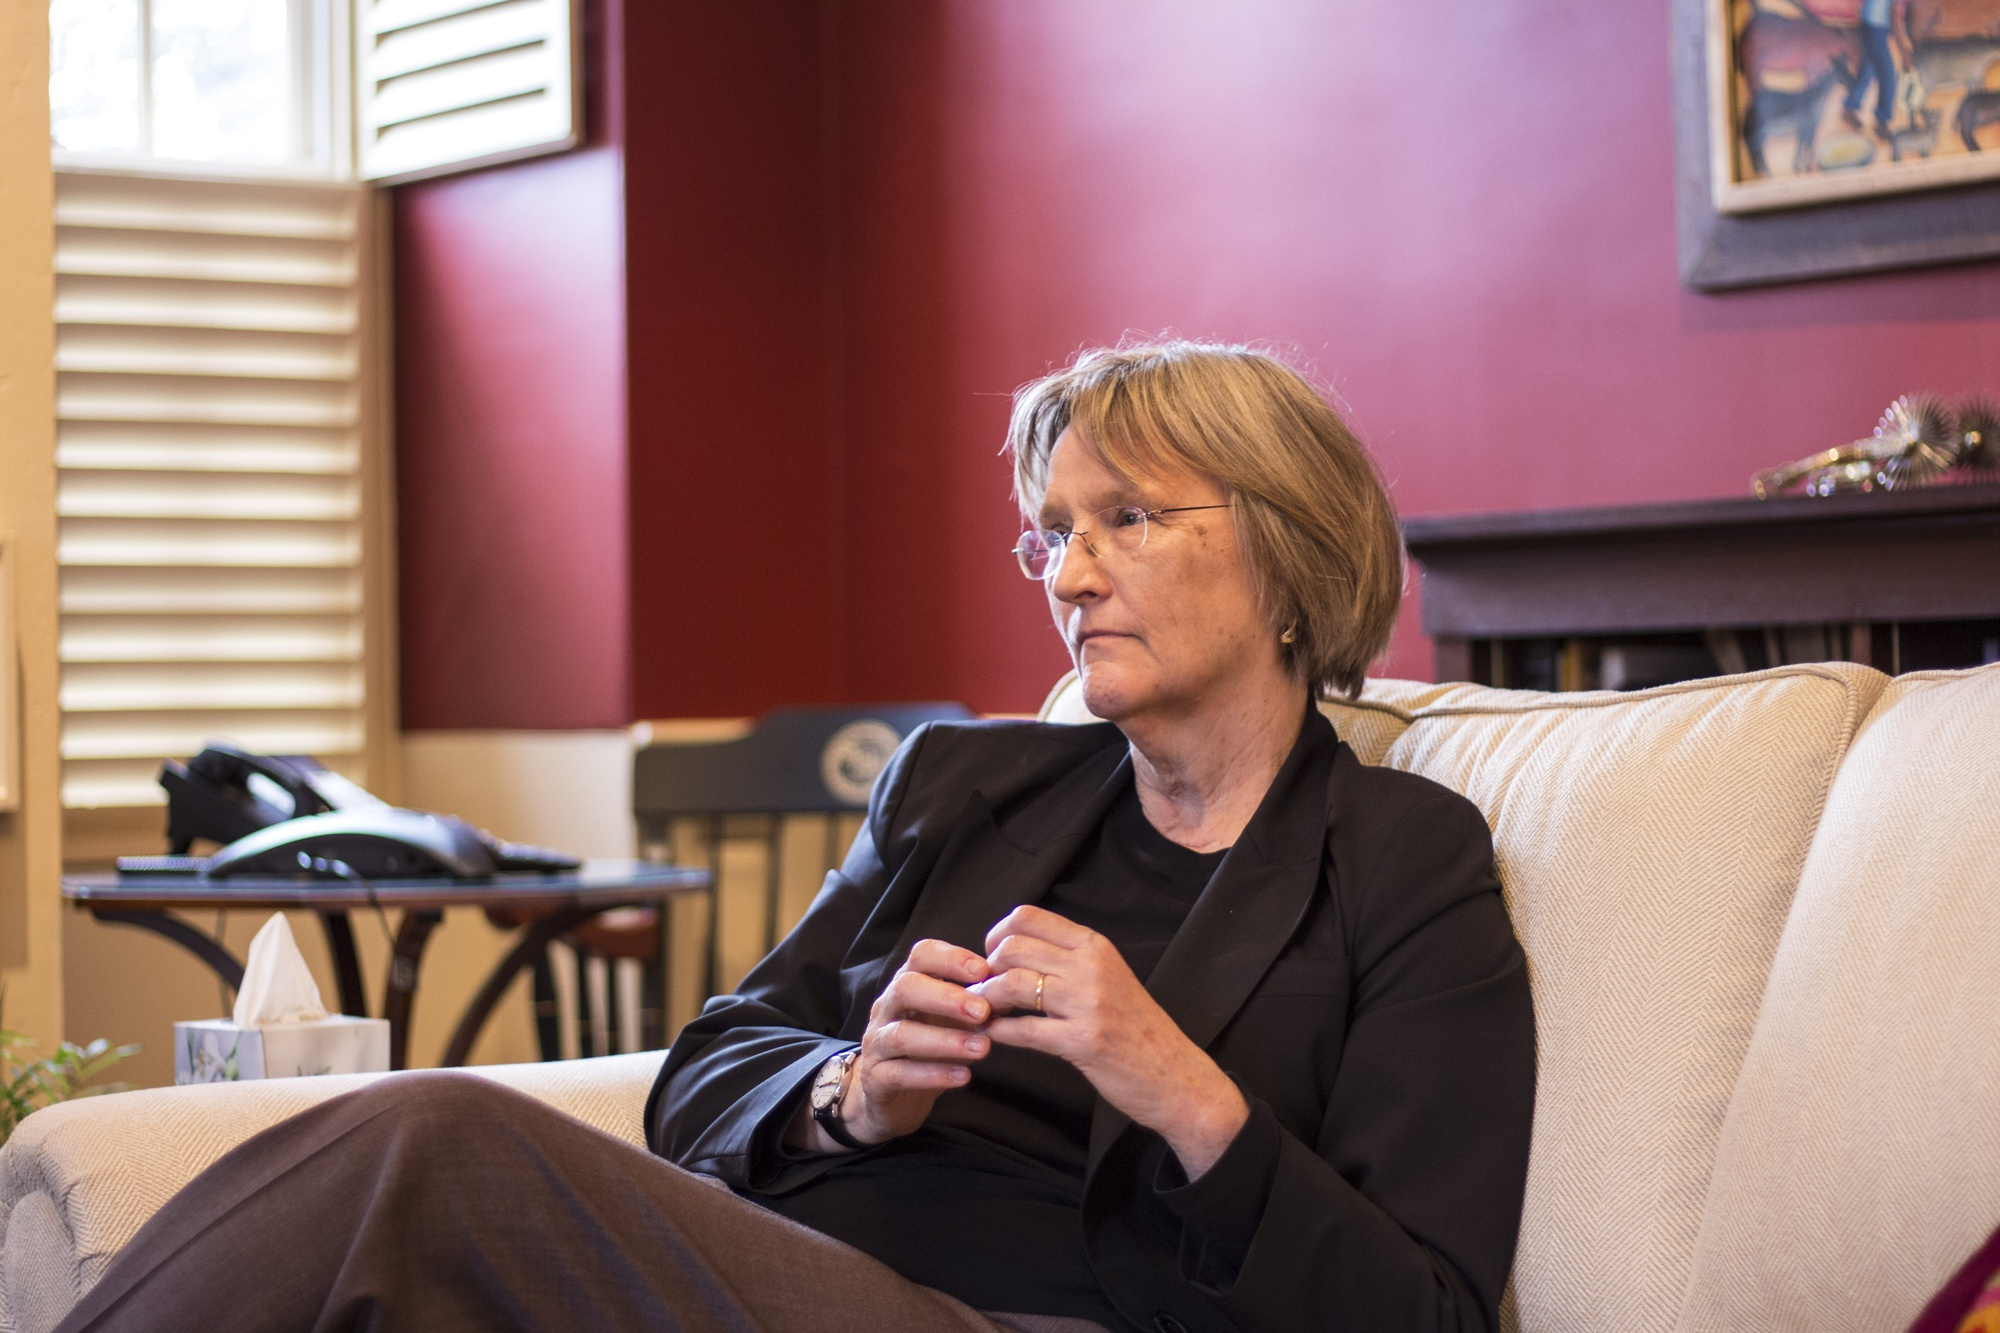 University President Drew G. Faust discussed a letter she wrote to Congress about Harvard's $37.6 billion endowment in a recent interview in Massachusetts Hall.